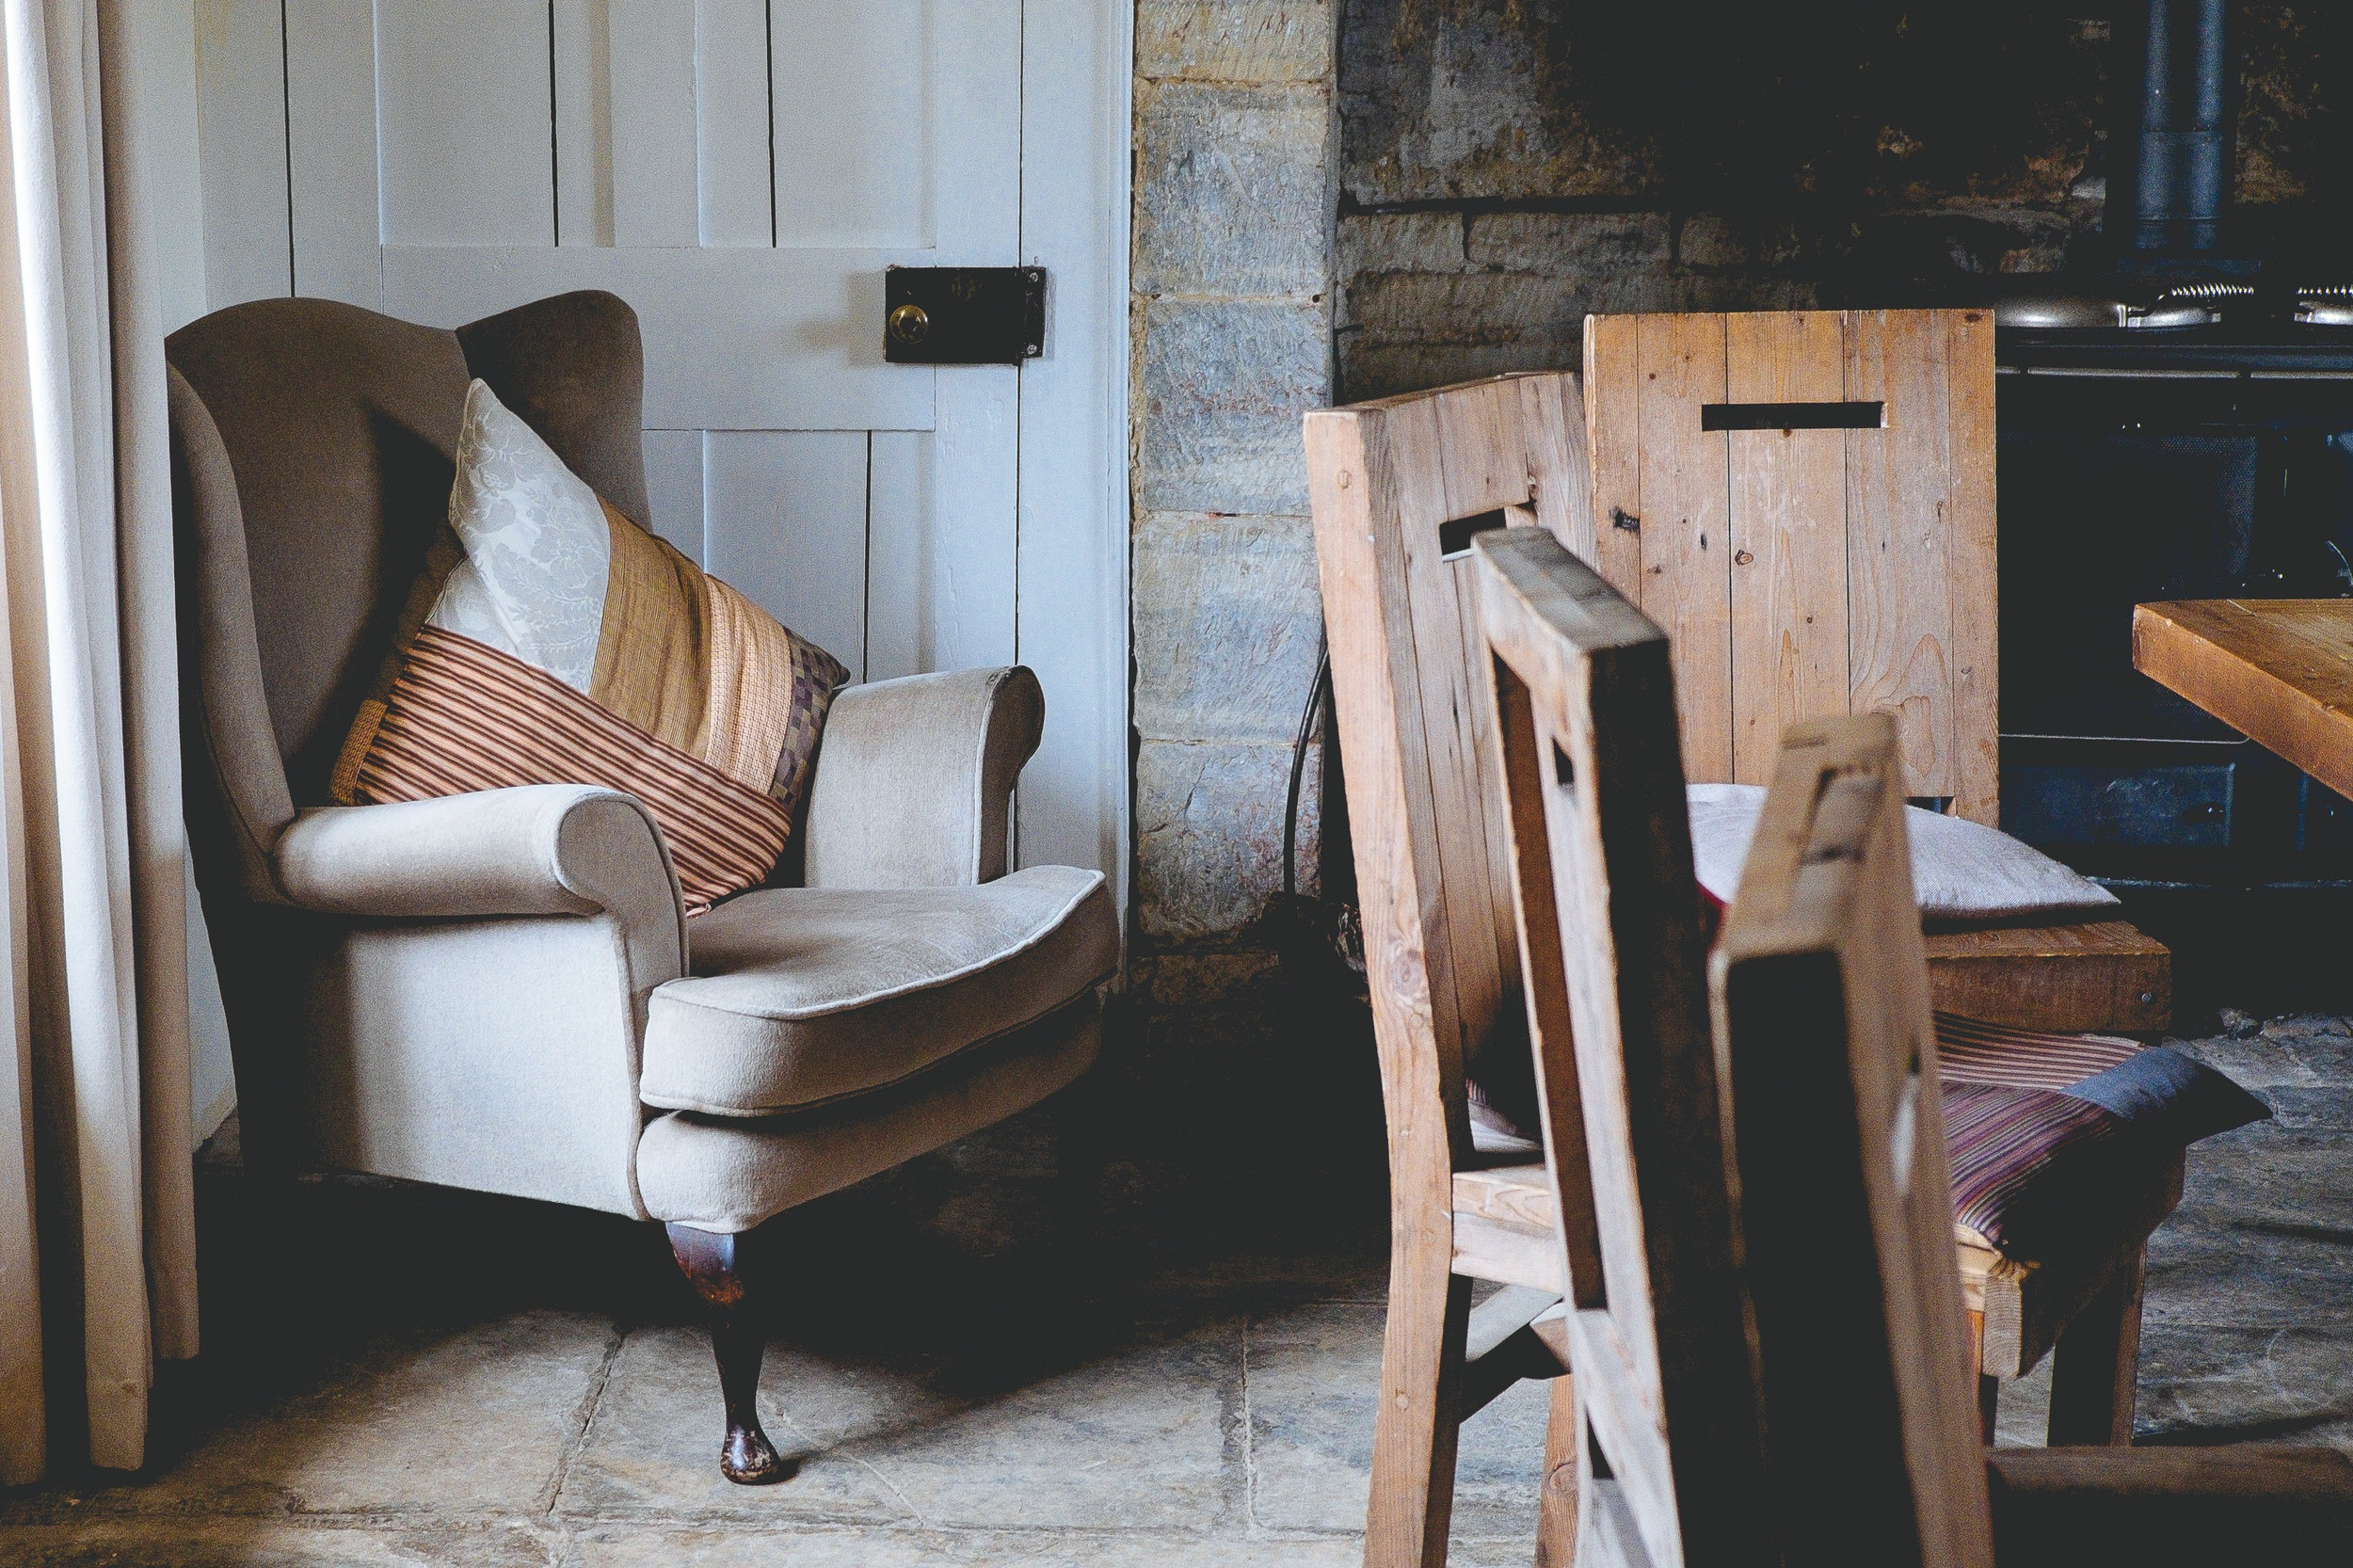 Upholstery Services - We have you covered.Free your furniture from stains, rips, and bad taste with new fabric and a new lease on life.